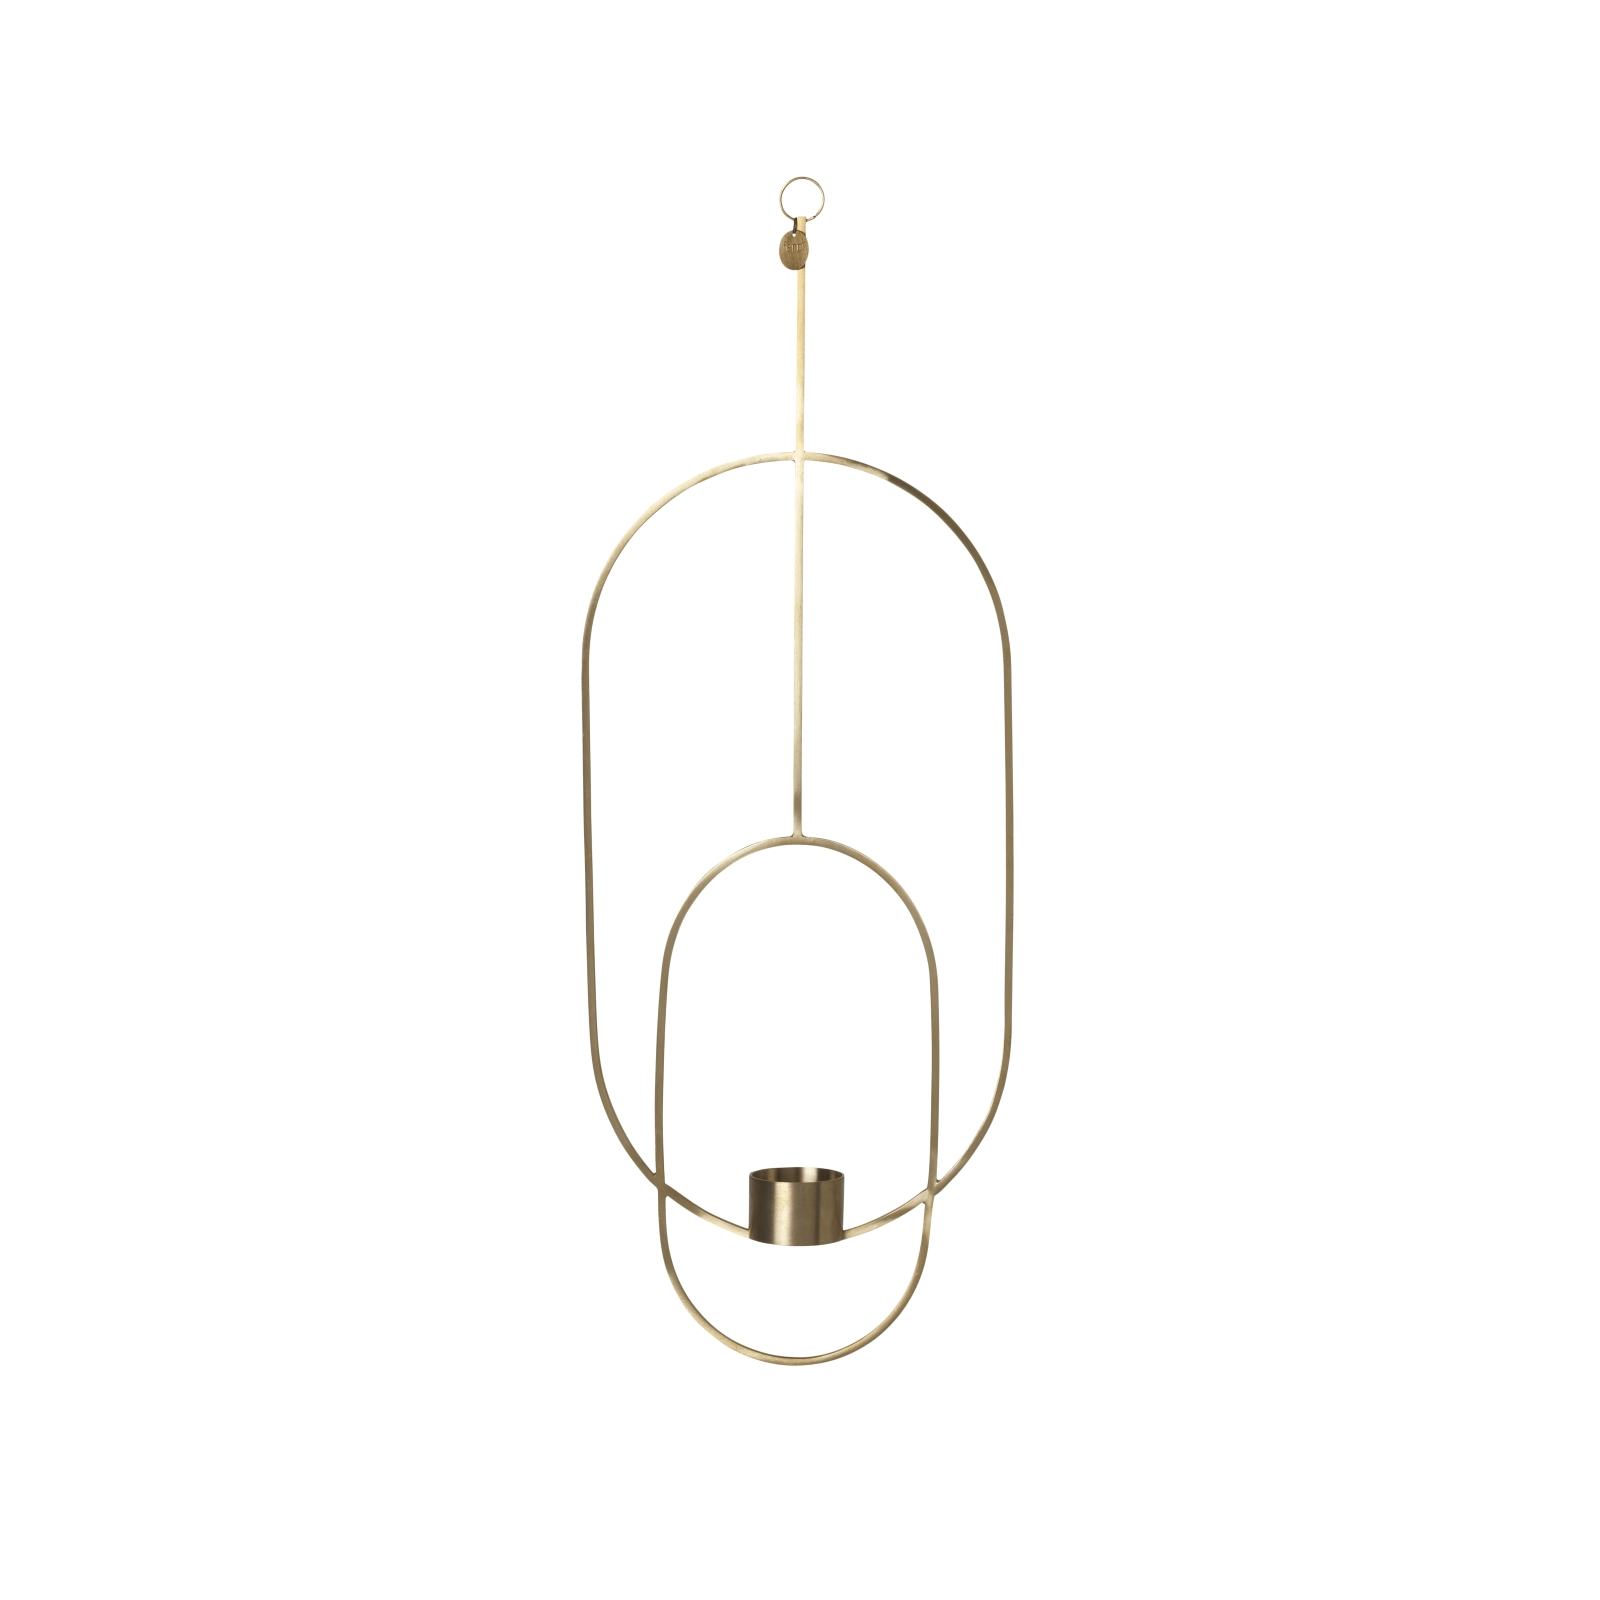 Hanging Tealight Deco Oval mässing, Ferm Living